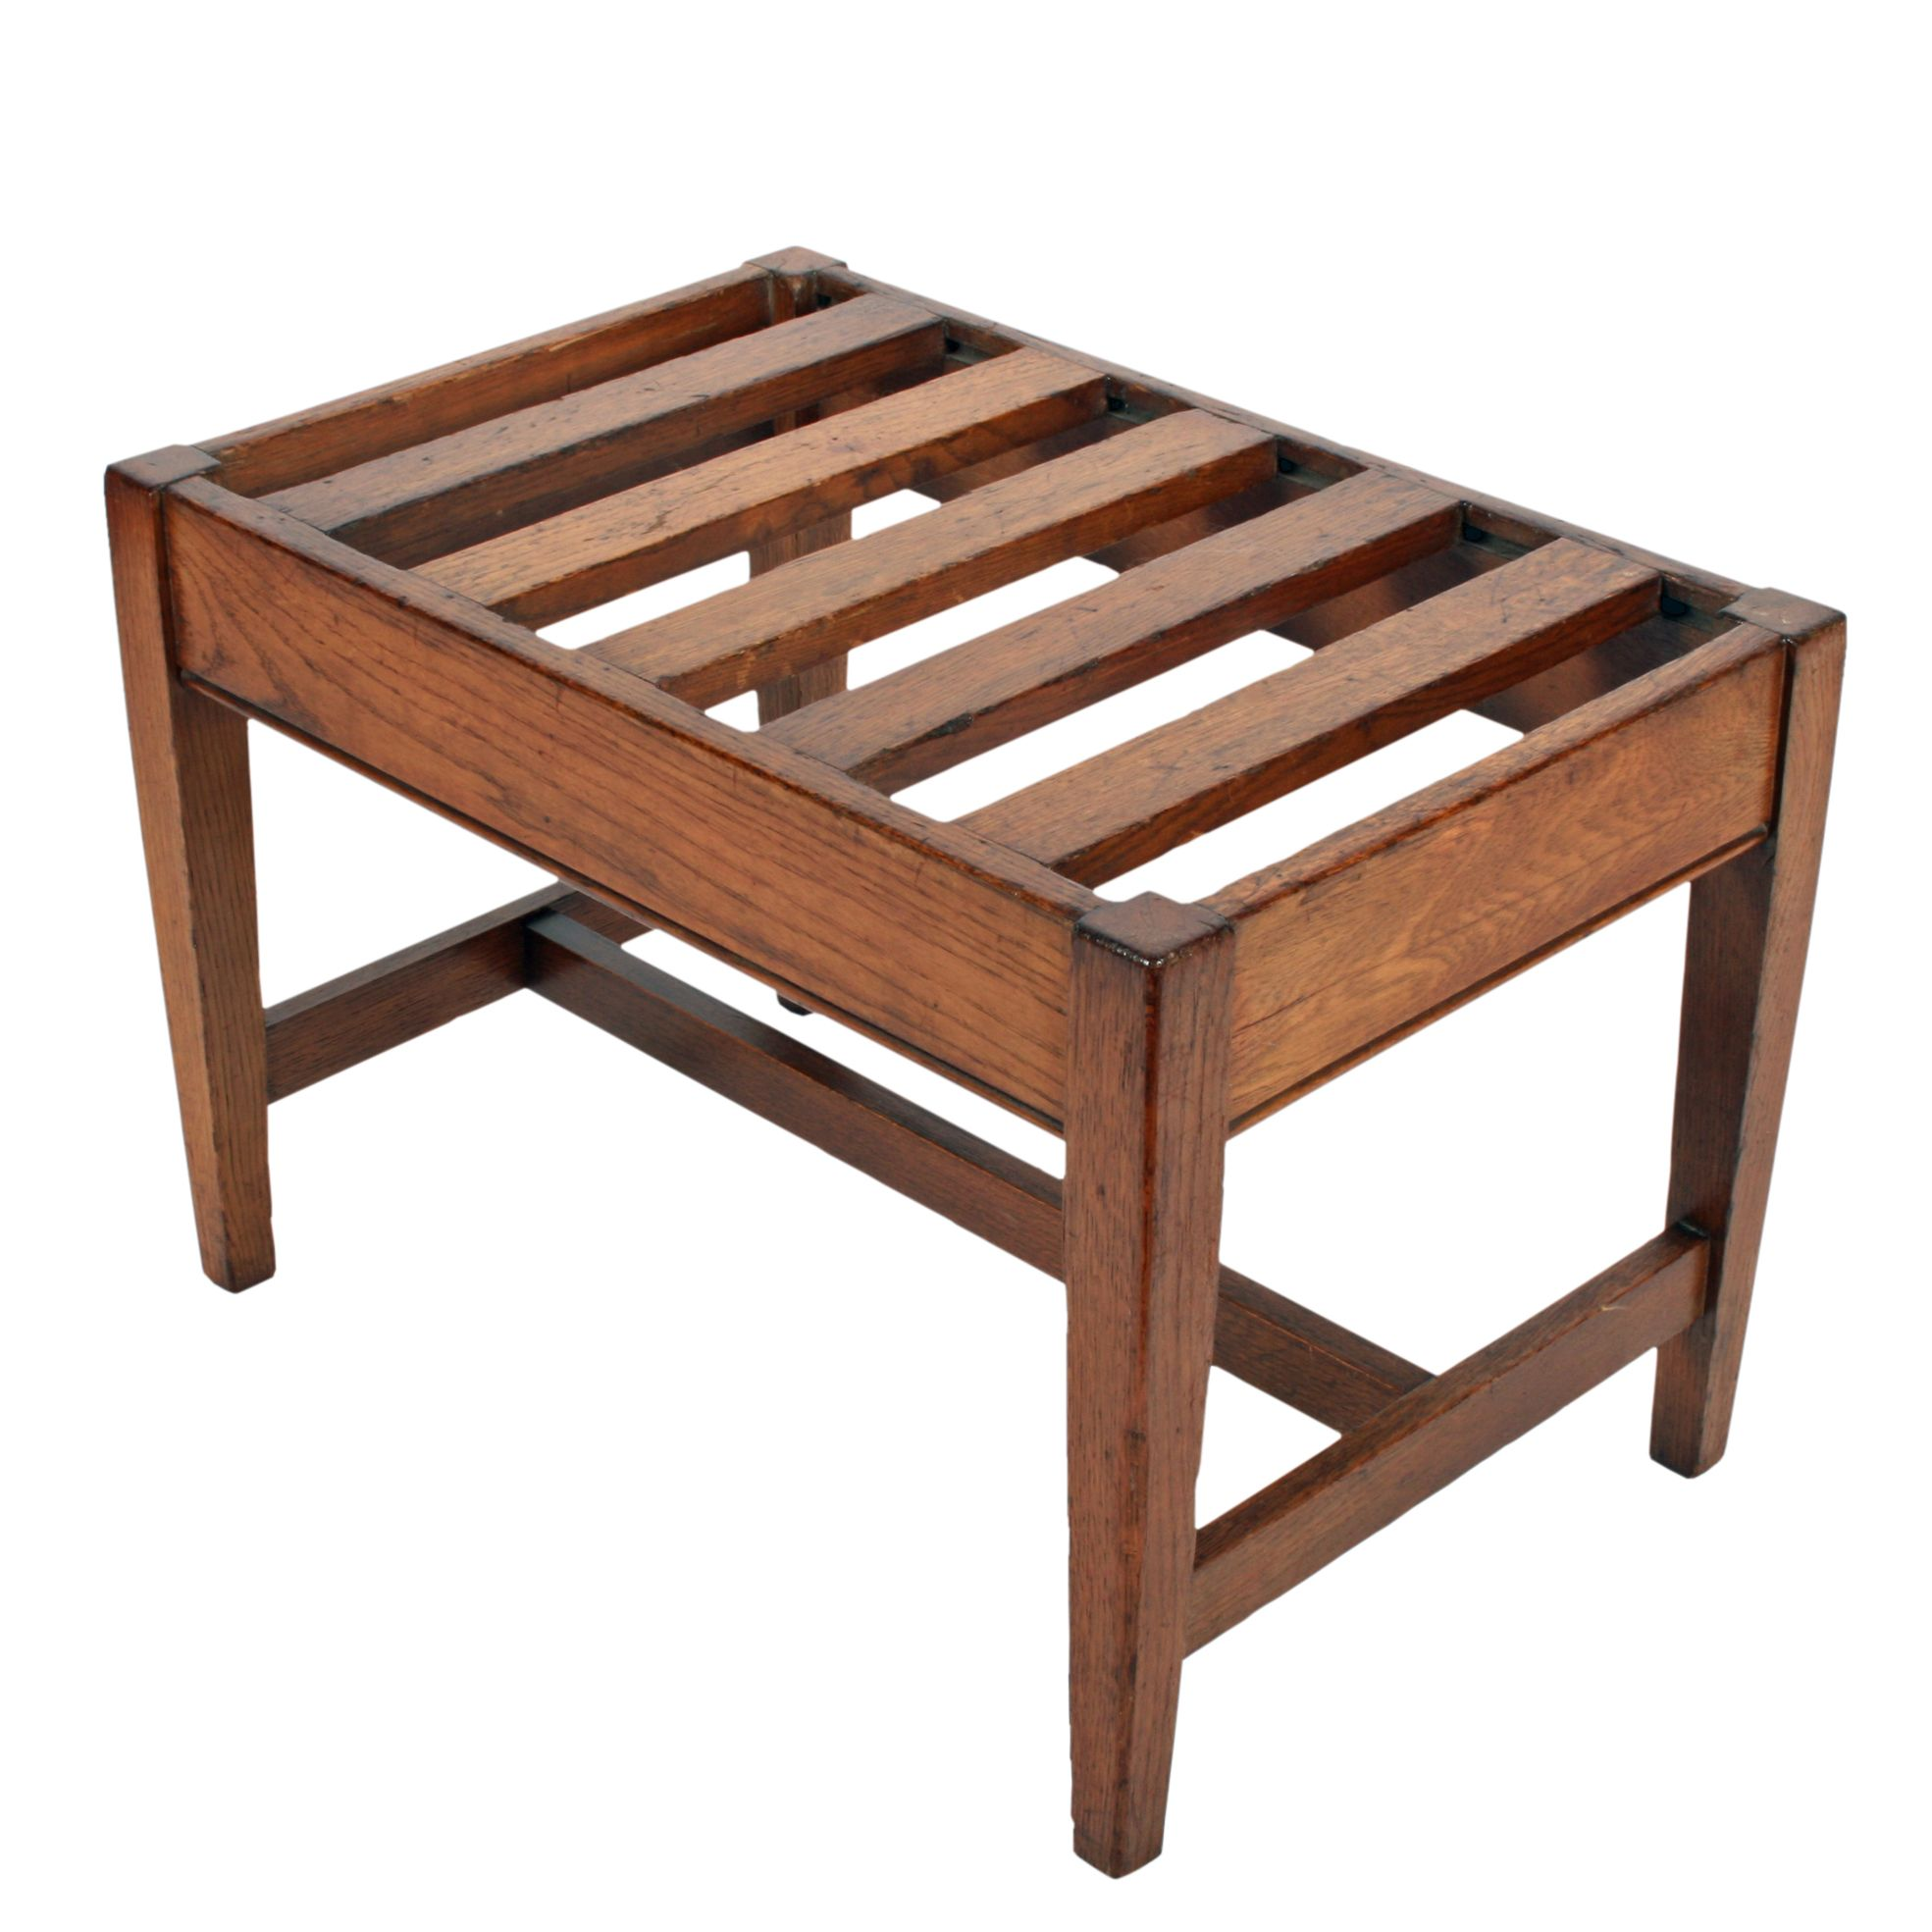 Edwardian Oak Luggage Rack | Antique Bedroom furniture and ...